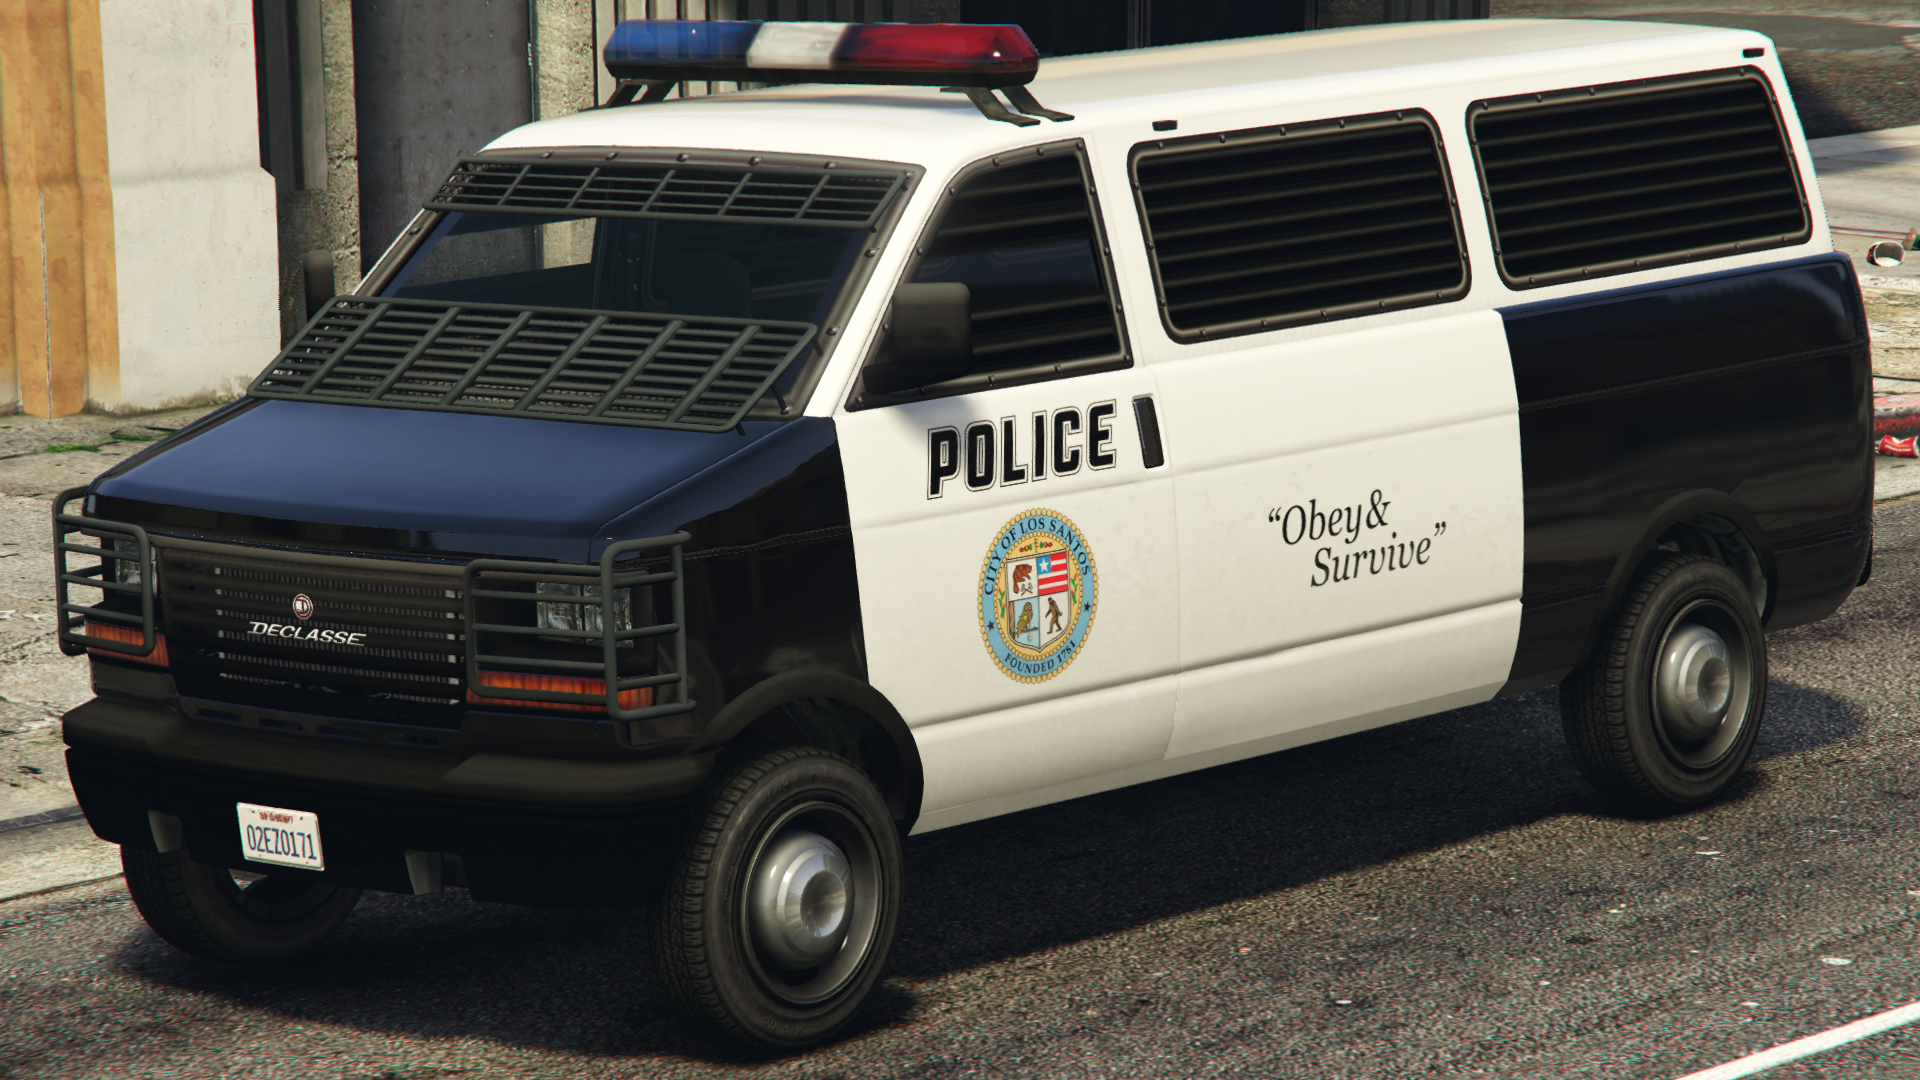 Police Transporter | GTA Wiki | FANDOM powered by Wikia